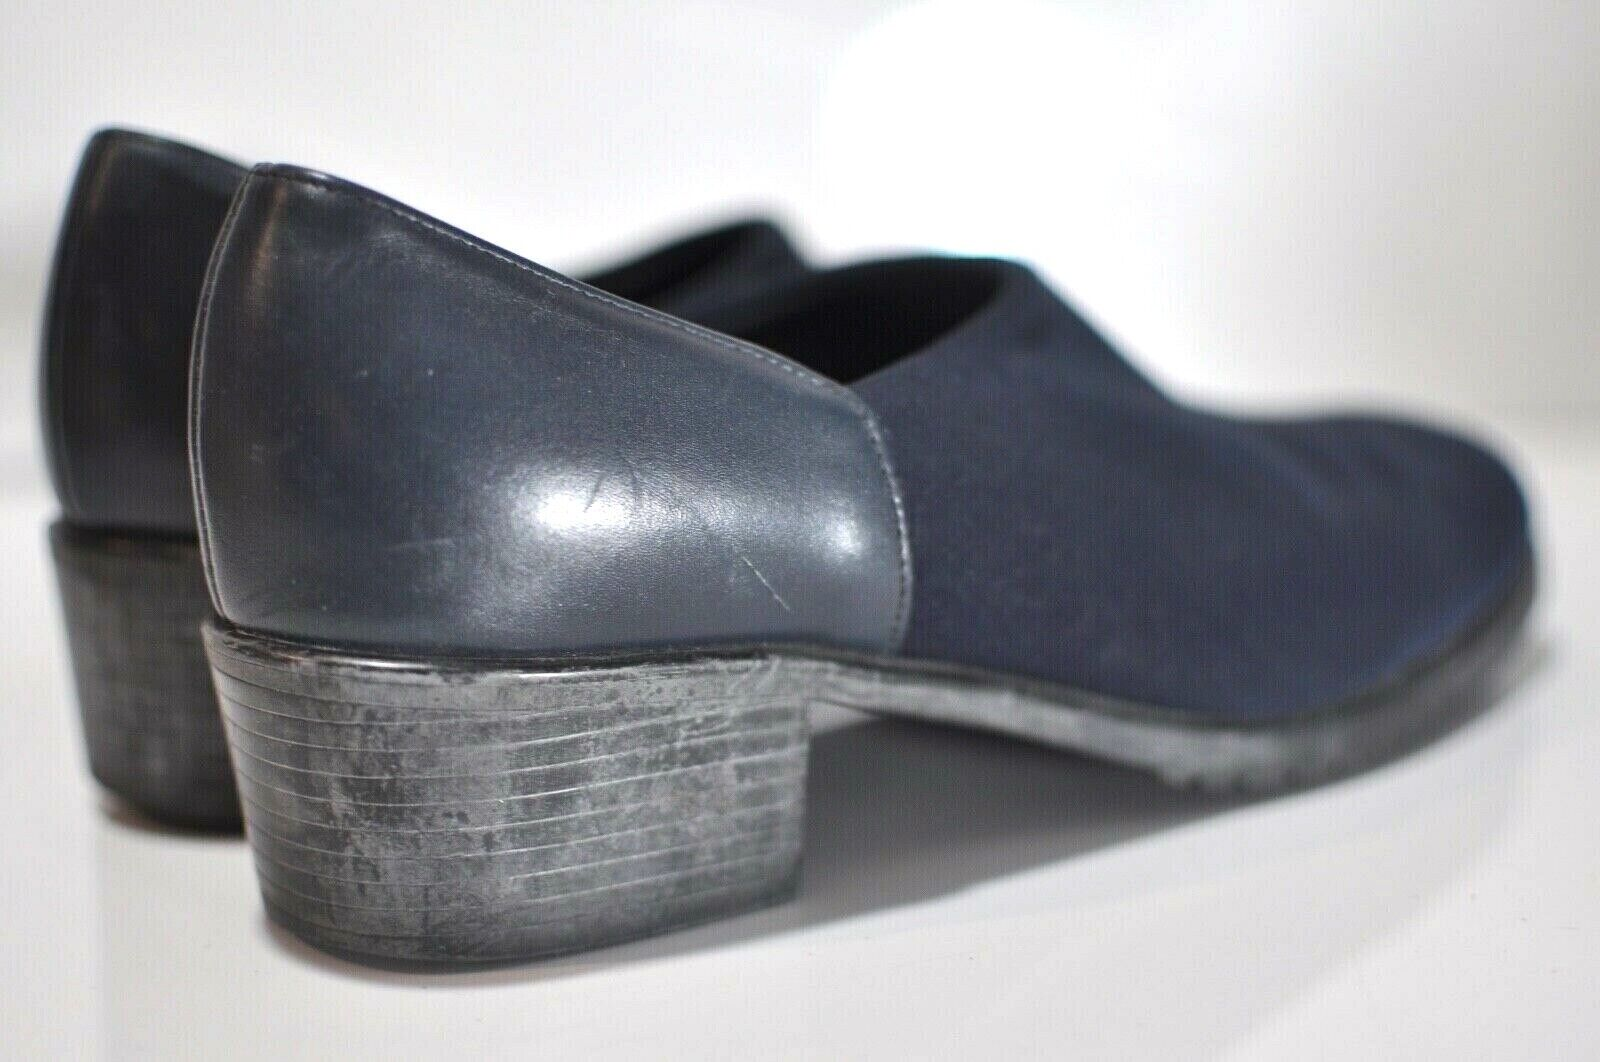 Munro American Womens slip on shoes size 7.5 USA